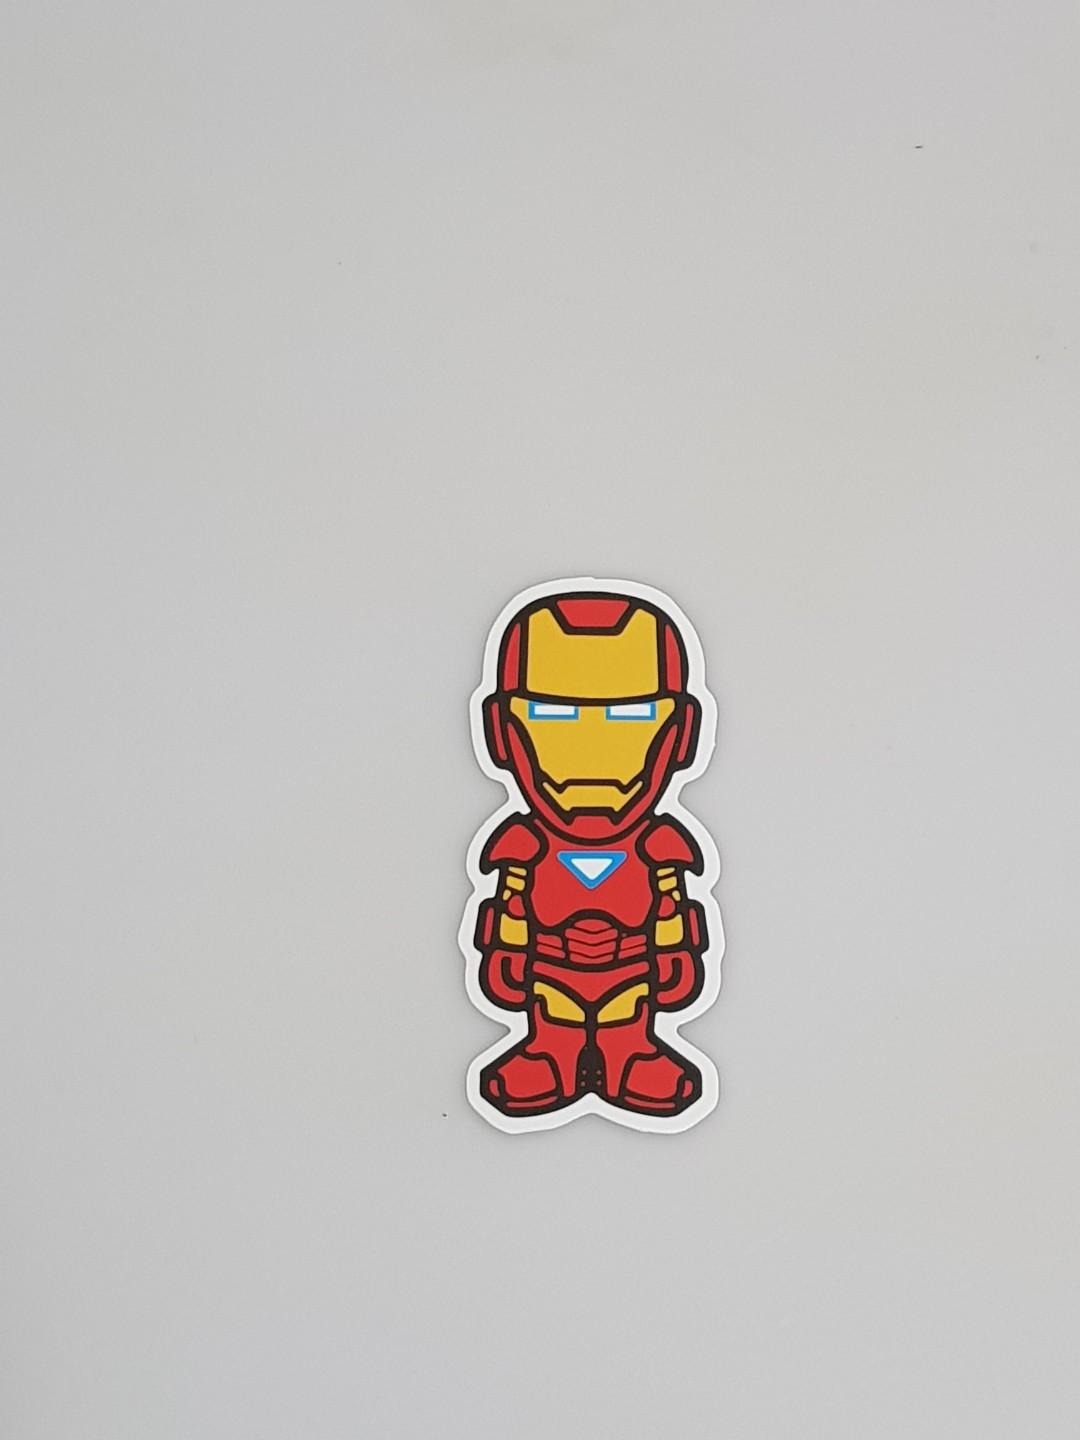 Iron Man Laptop/Luggage Sticker